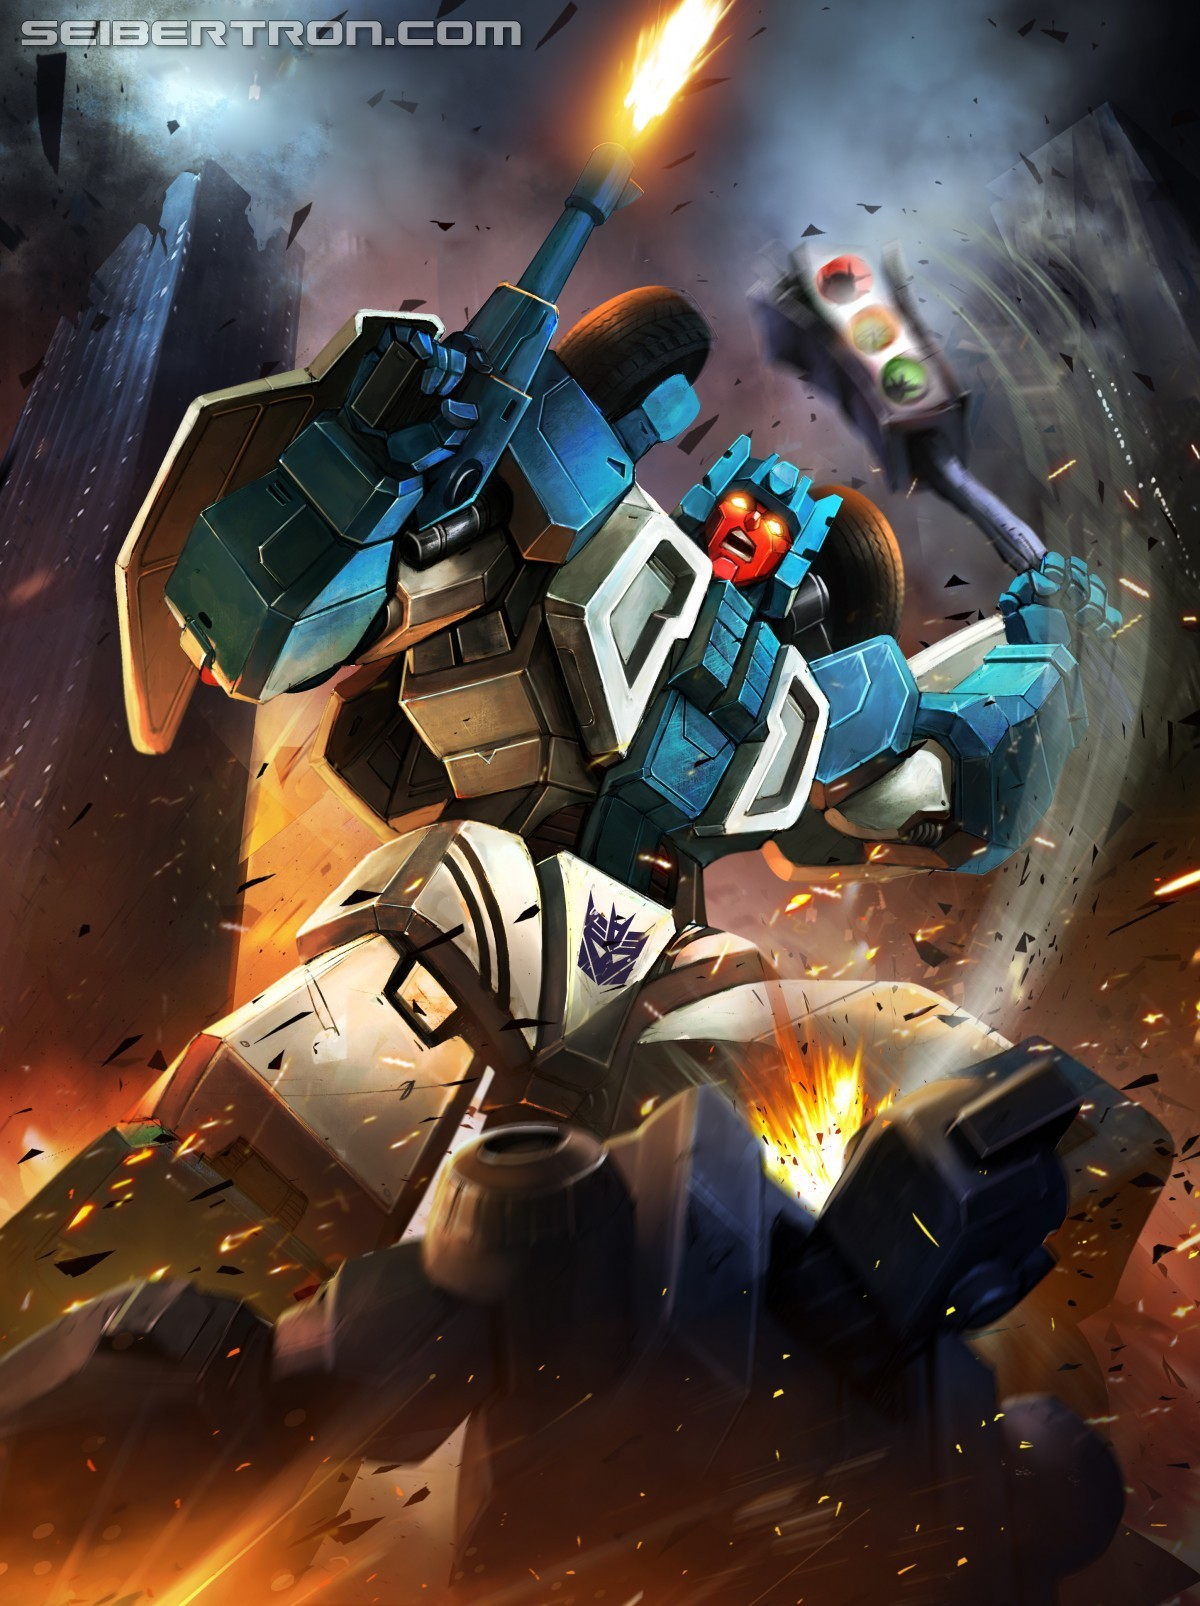 Re: Transformers: Legends Mobile Device Game Updates